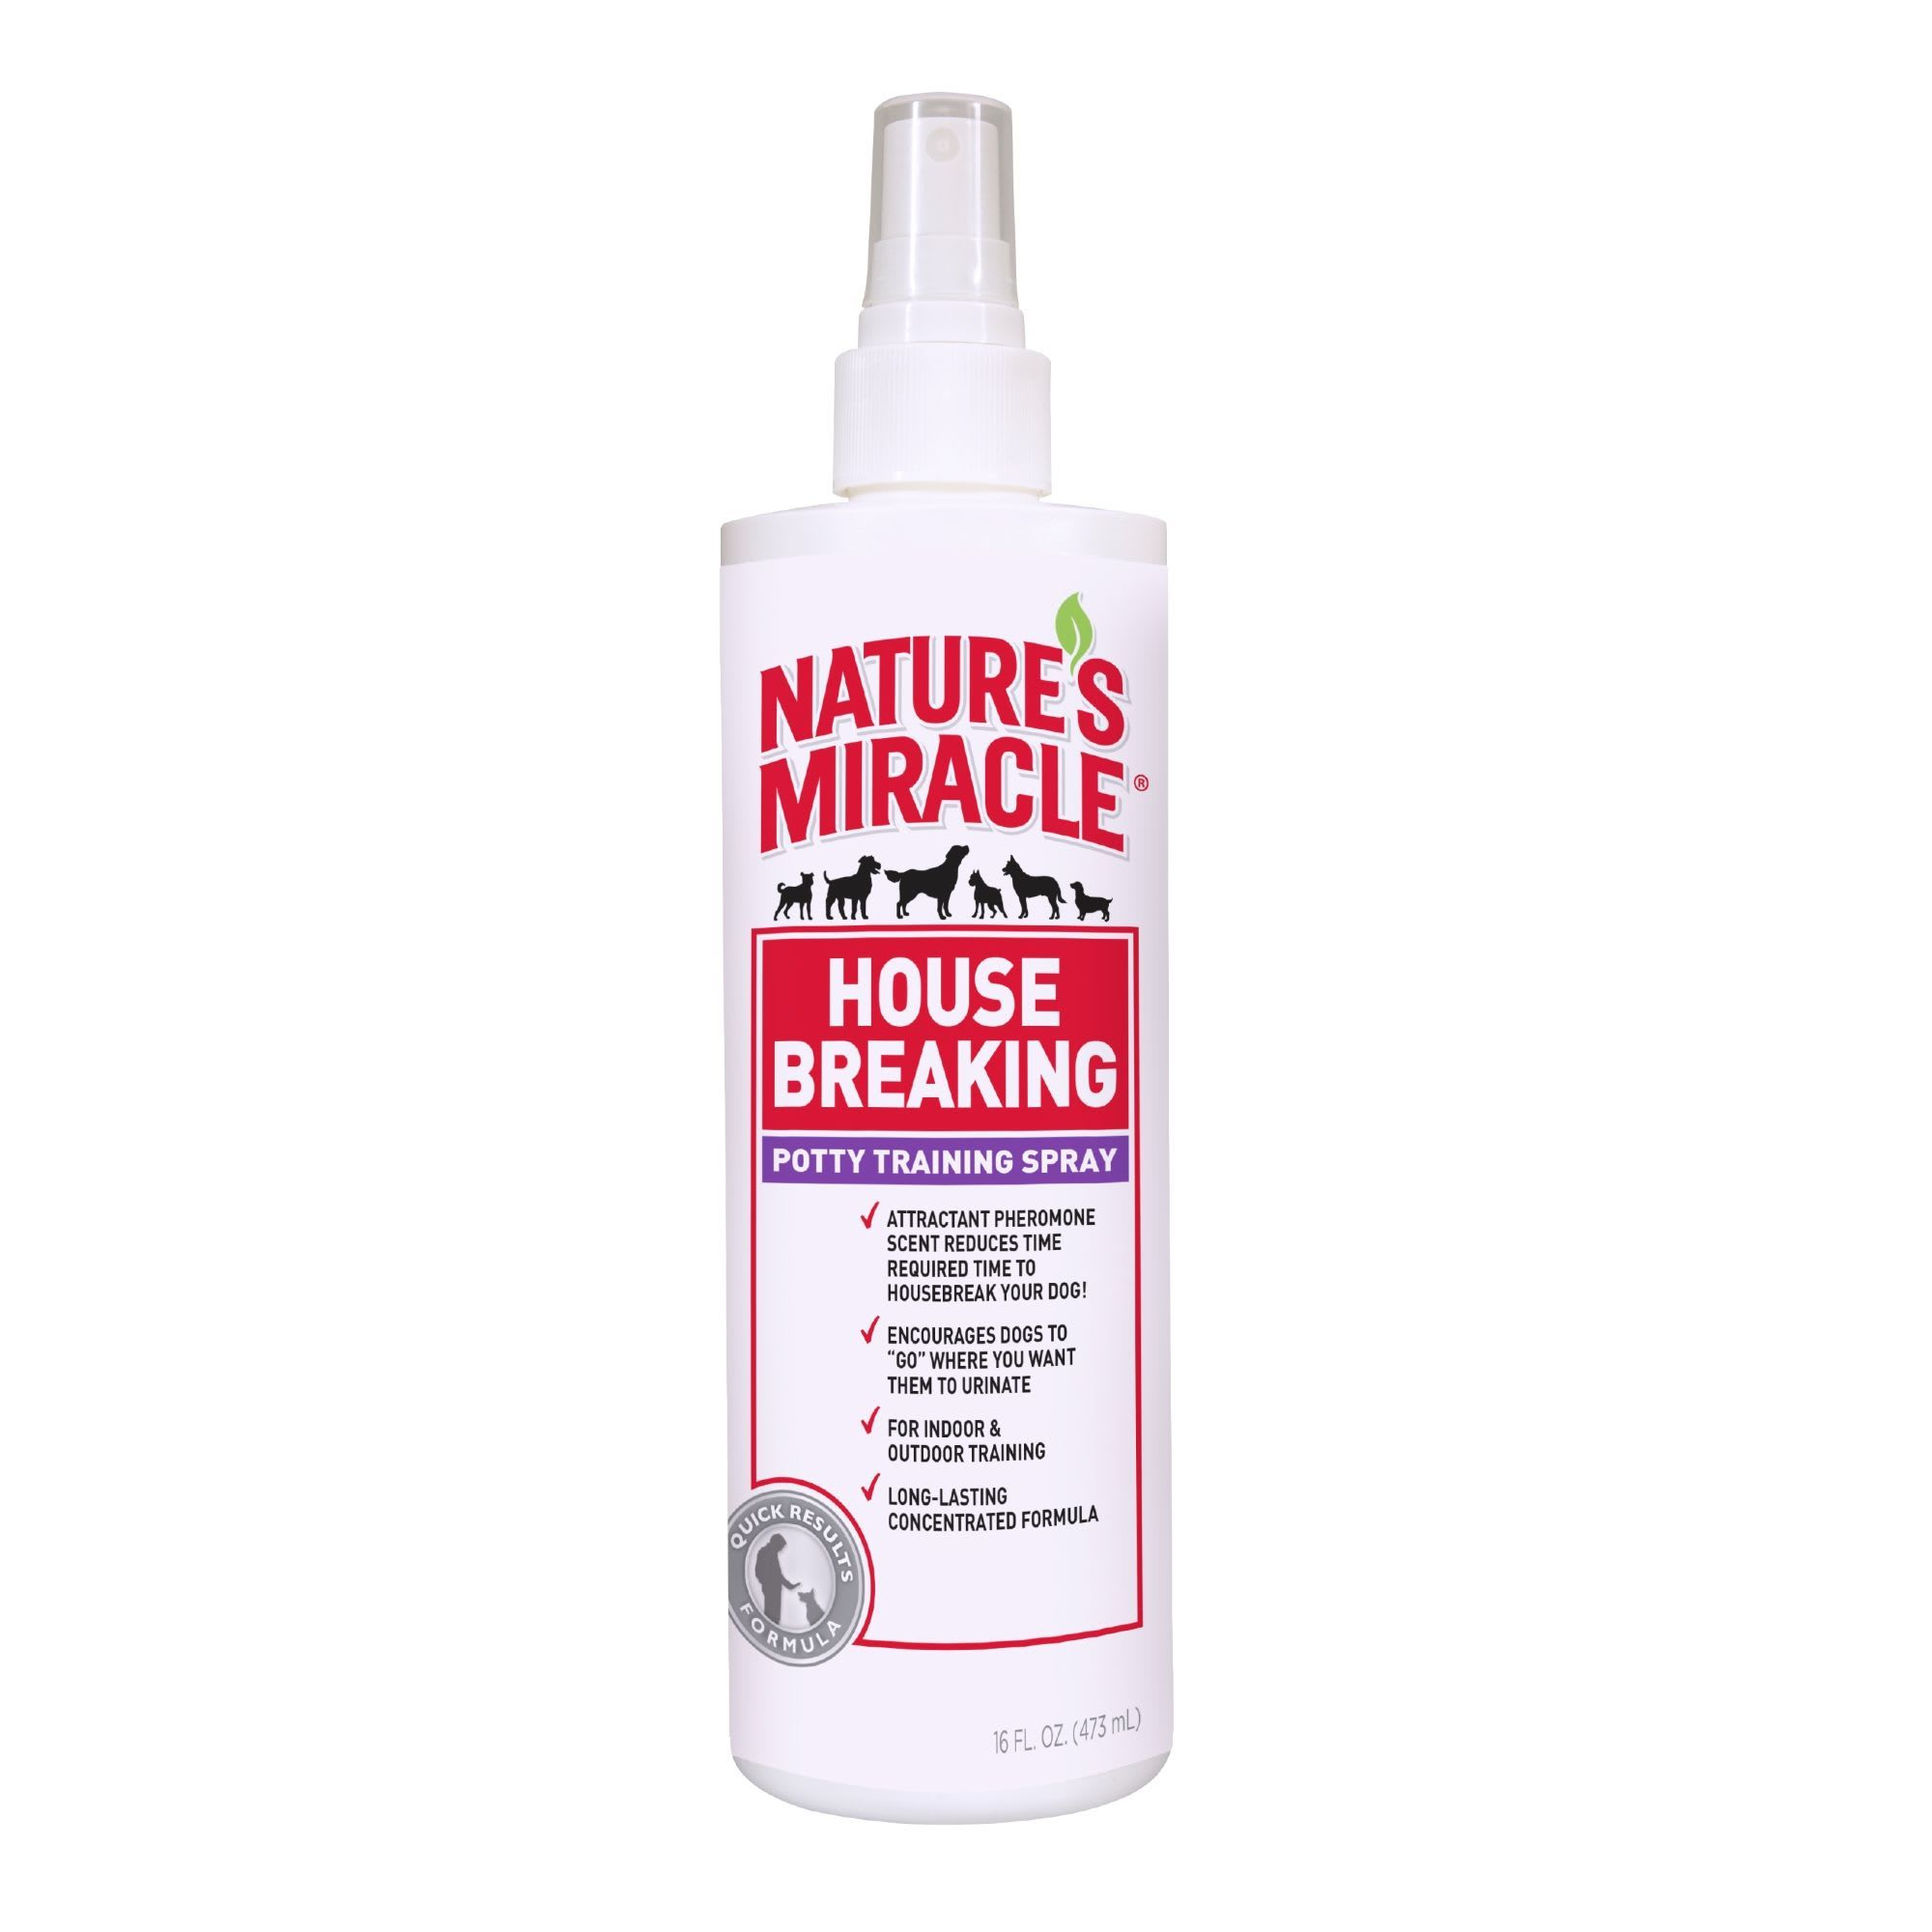 Nature S Miracle House Breaking Potty Training Spray Quick Results Formula For Dogs 16 Fl Oz Petco In 2020 Cat Repellant Nature S Miracle Natural Repellent